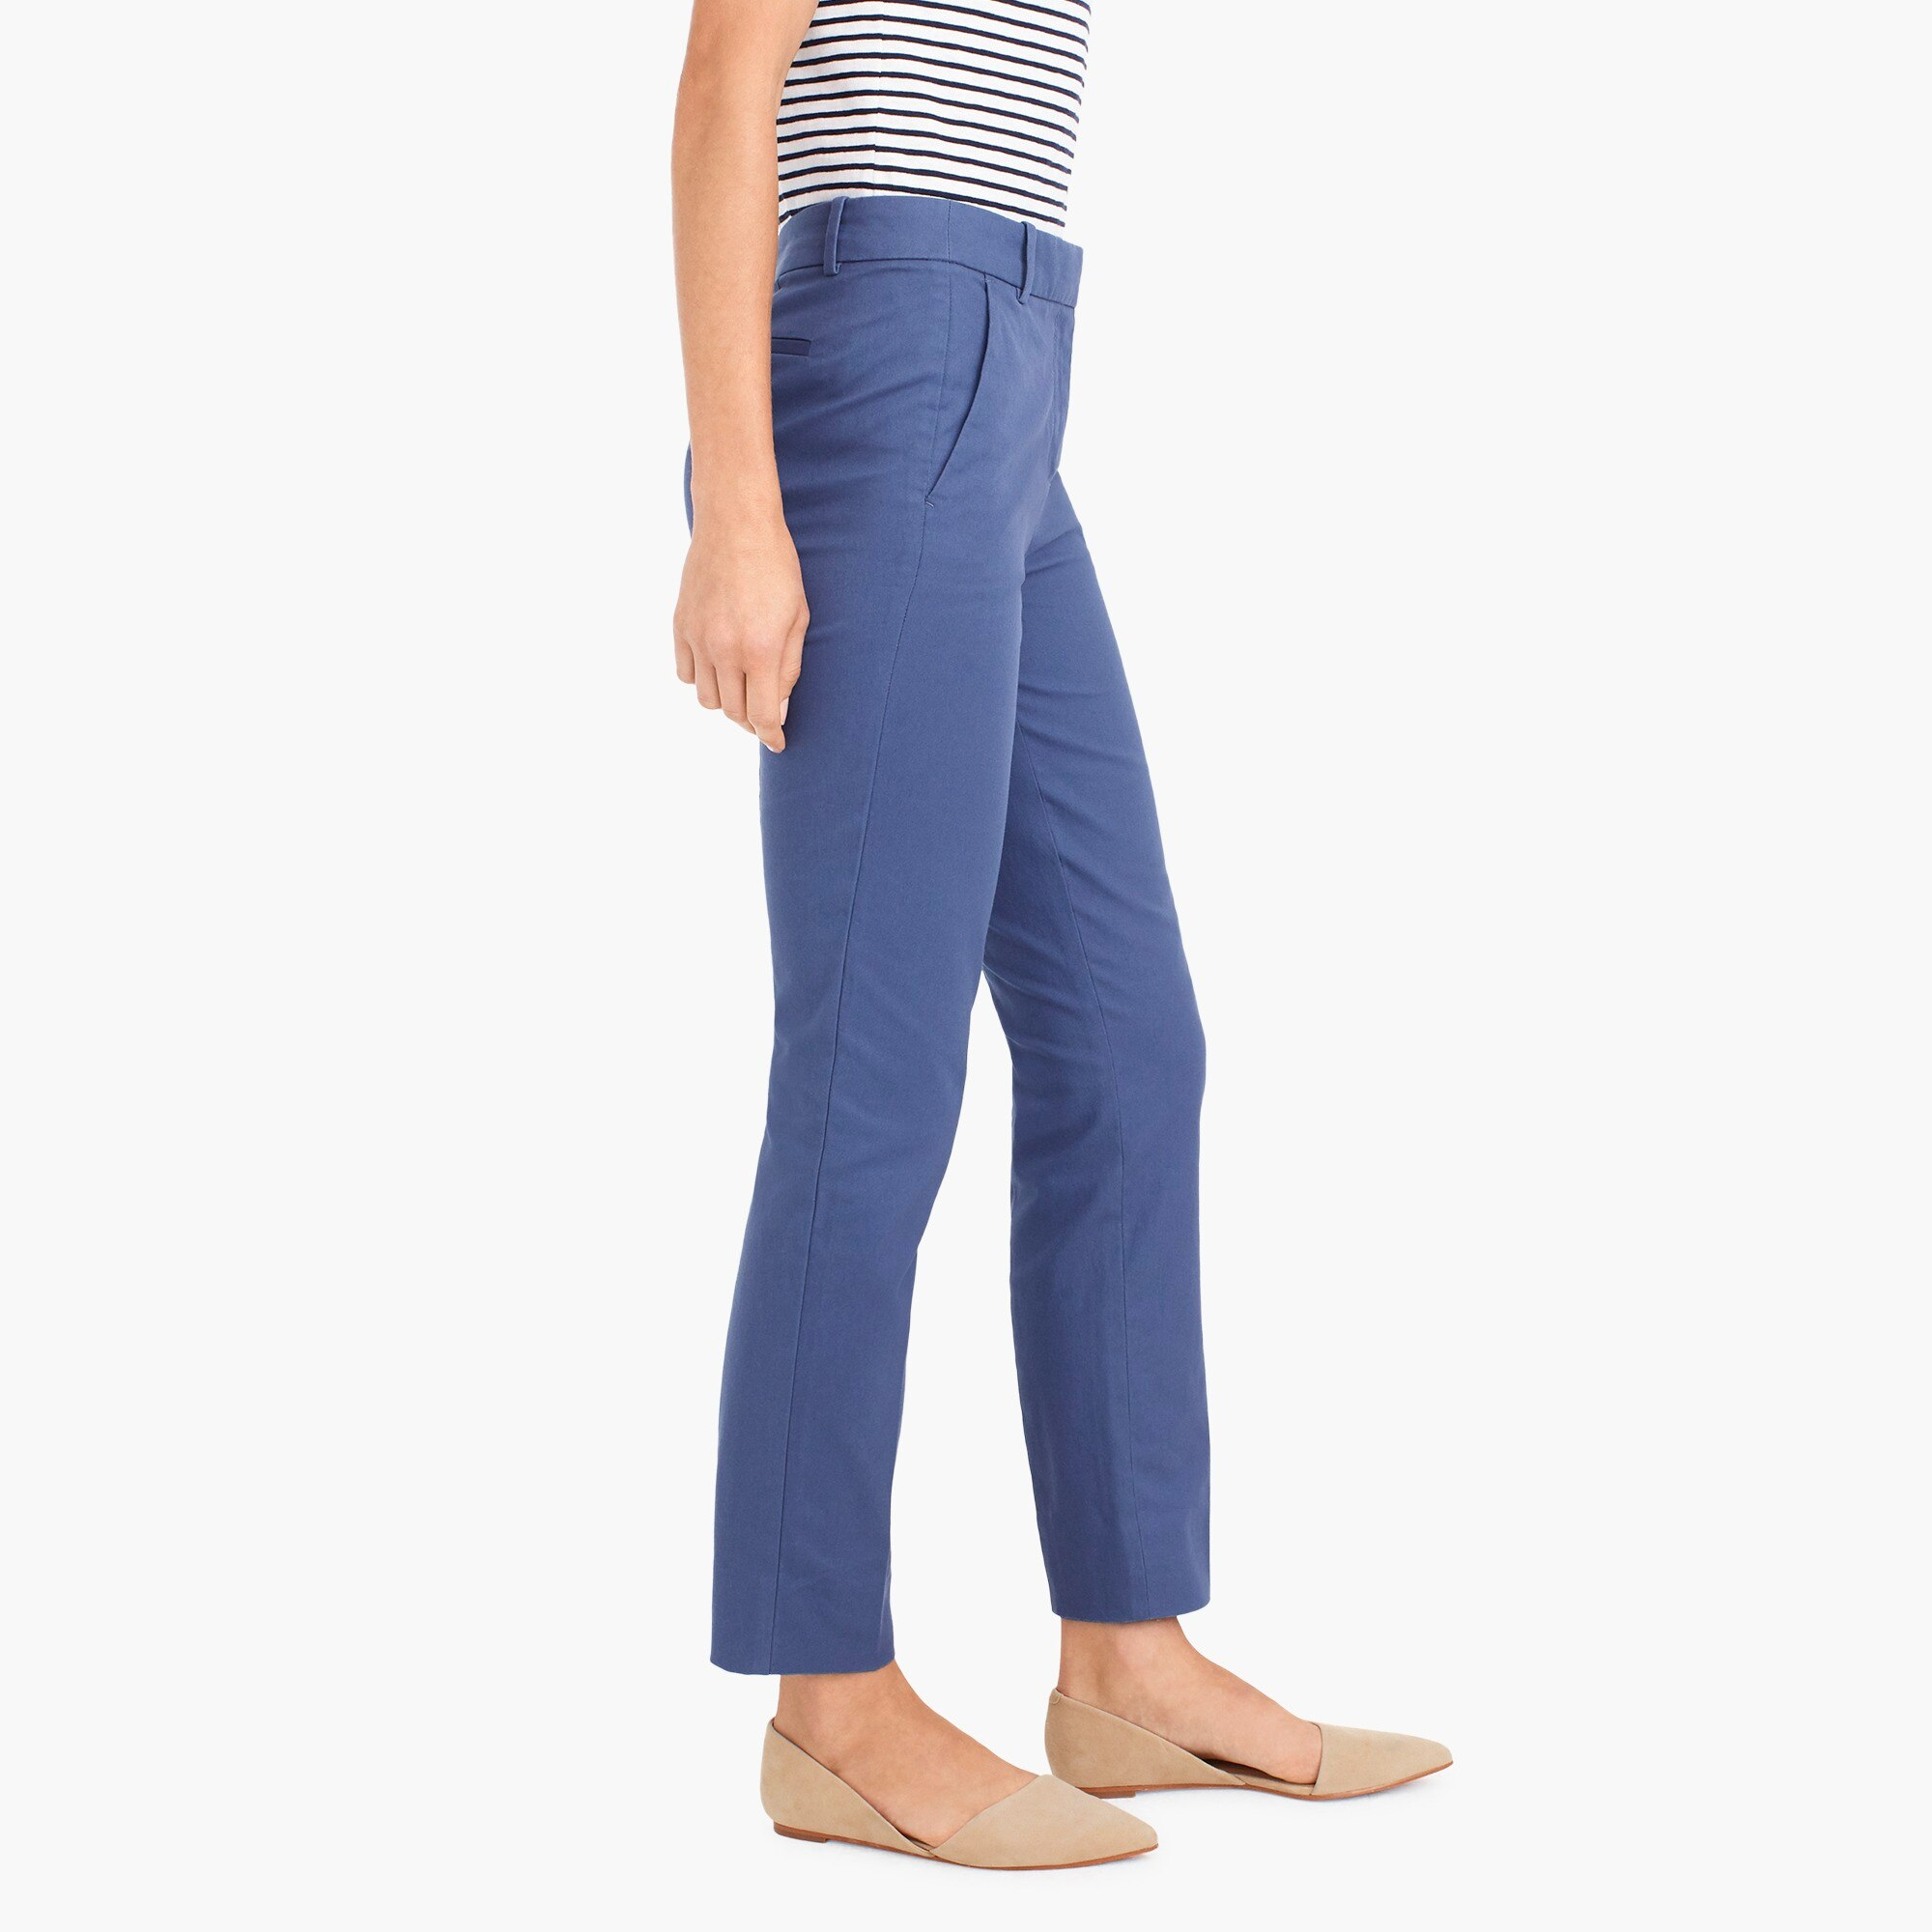 Image 5 for Petite effortless slim crop chino pant